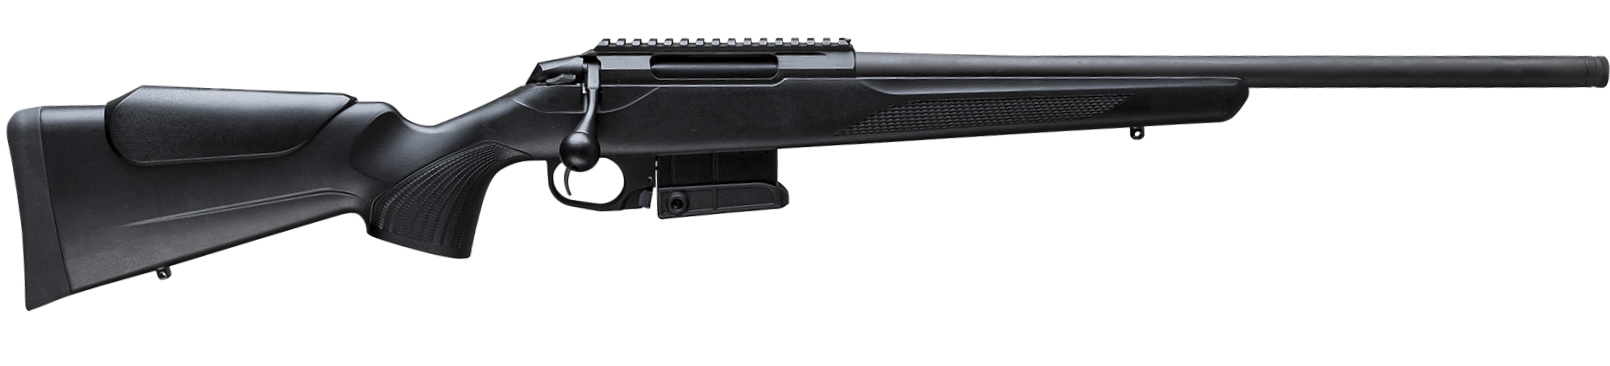 t3x_compact_tactical_rifle